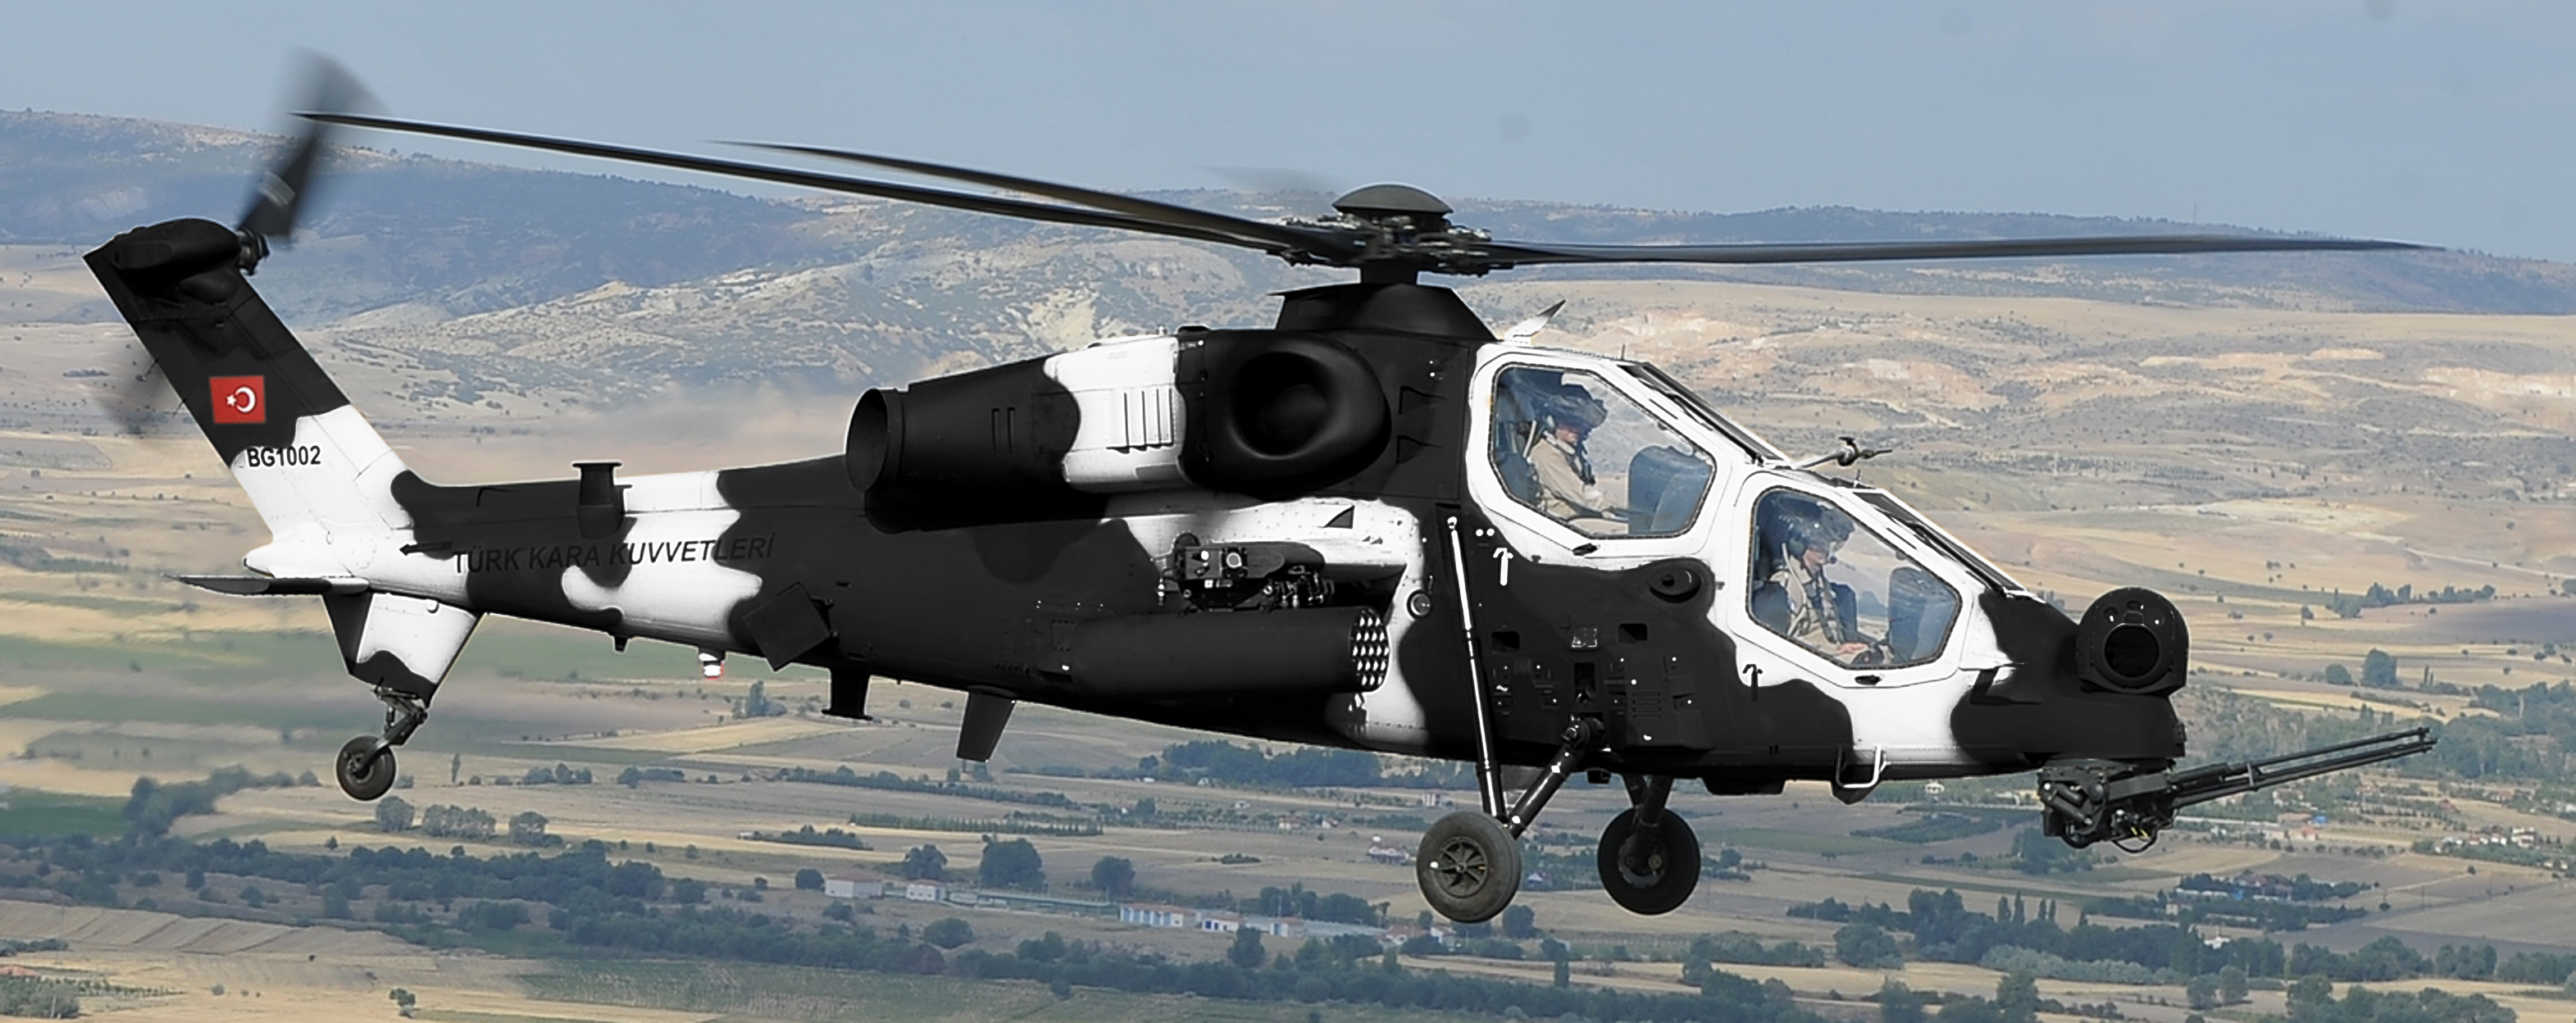 t129 helicopter with Big on T129 ATTACK HELICOPTER raid atak weapon aircraft military  12 besides L 159 Earns Praise Credible Aggressor Fighter also Watch also T129 ATTACK HELICOPTER raid atak weapon aircraft military  7 furthermore E0 B8 95 E0 B8 B8 E0 B8 A3 E0 B8 81 E0 B8 B5 E0 B9 80 E0 B8 AA E0 B8 99 E0 B8 AD E0 B9 80 E0 B8 AE E0 B8 A5 E0 B8 B4 E0 B8 84 E0 B8 AD E0 B8 9B E0 B9 80 E0 B8 95 E0 B8 AD E0 B8 A3 E0 B9 8C E0 B9 82 E0 B8 88 E0 B8 A1 E0 B8 95 E0 B8 B5 T129 ATAK  E0 B9 80 E0 B8 9E E0 B8 B7 E0 B9 88 E0 B8 AD E0 B8 97 E0 B8 94 E0 B9 81 E0 B8 97 E0 B8 99  E0 B8 AE  E0 B8 88  E0 B9 91 AH 1F  E0 B8 81 E0 B8 AD E0 B8 87 E0 B8 97 E0 B8 B1 E0 B8 9E E0 B8 9A E0 B8 81 E0 B9 84 E0 B8 97 E0 B8 A2.